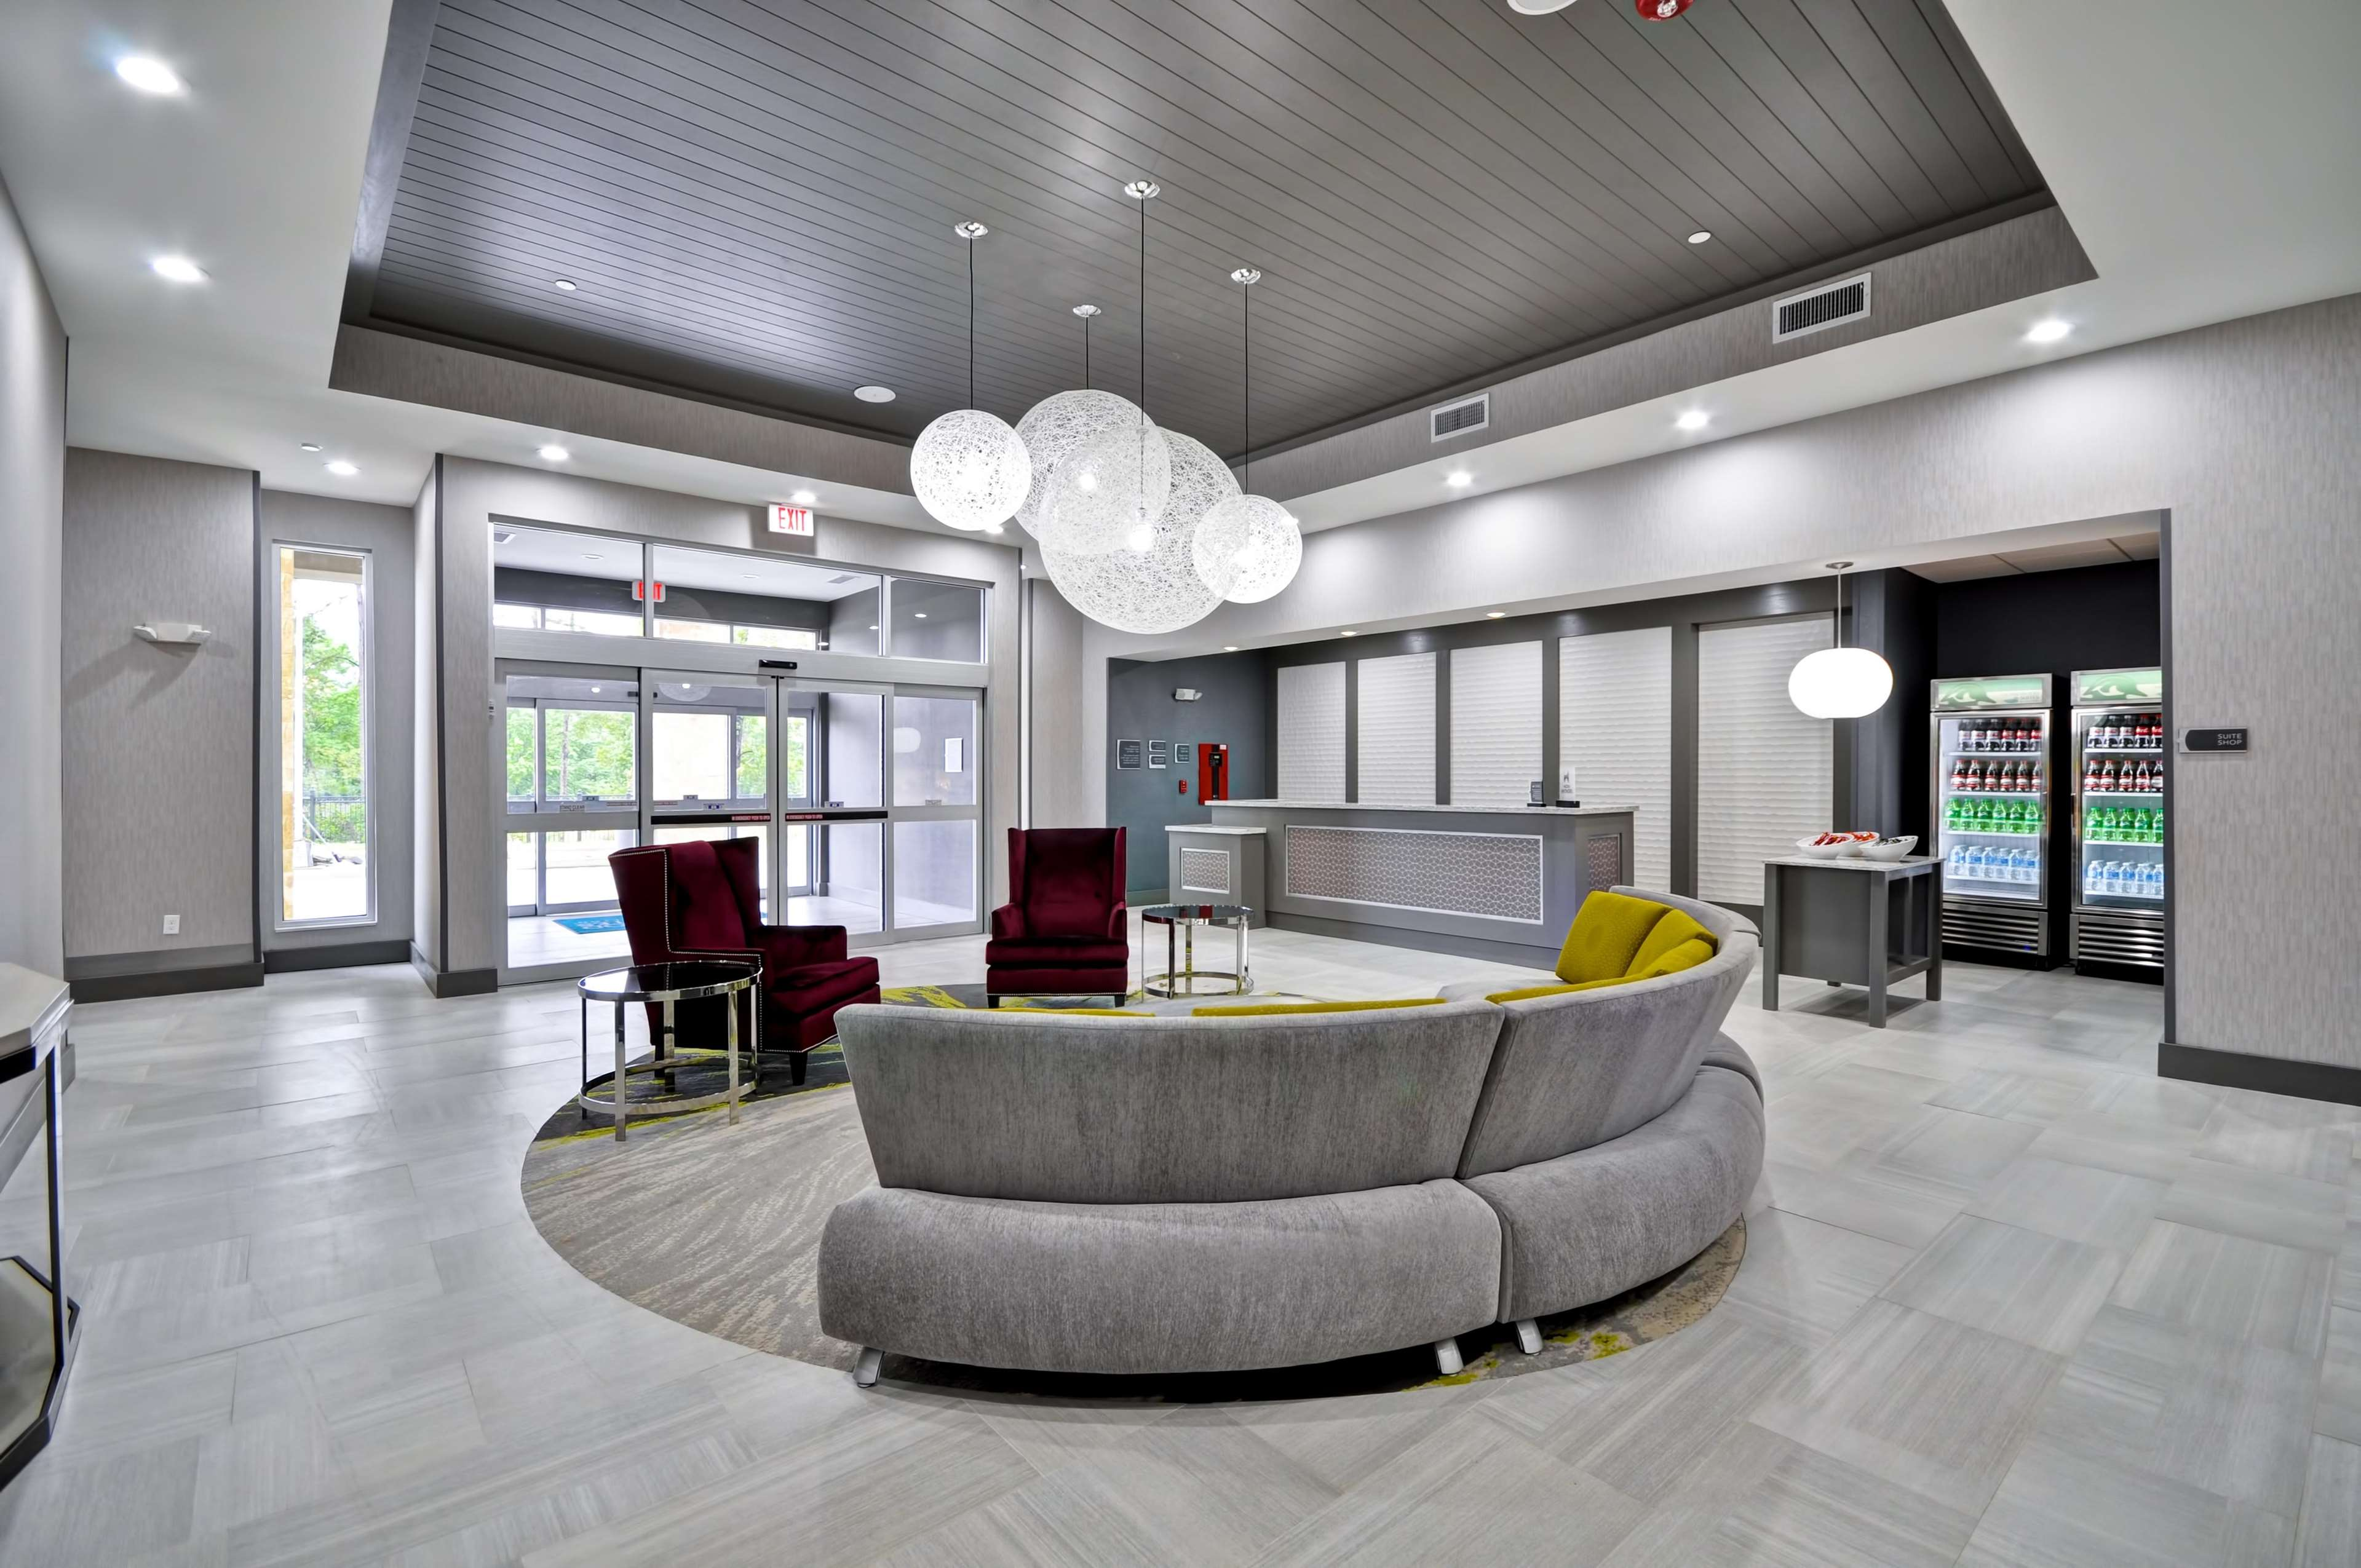 Homewood Suites by Hilton Tyler image 11